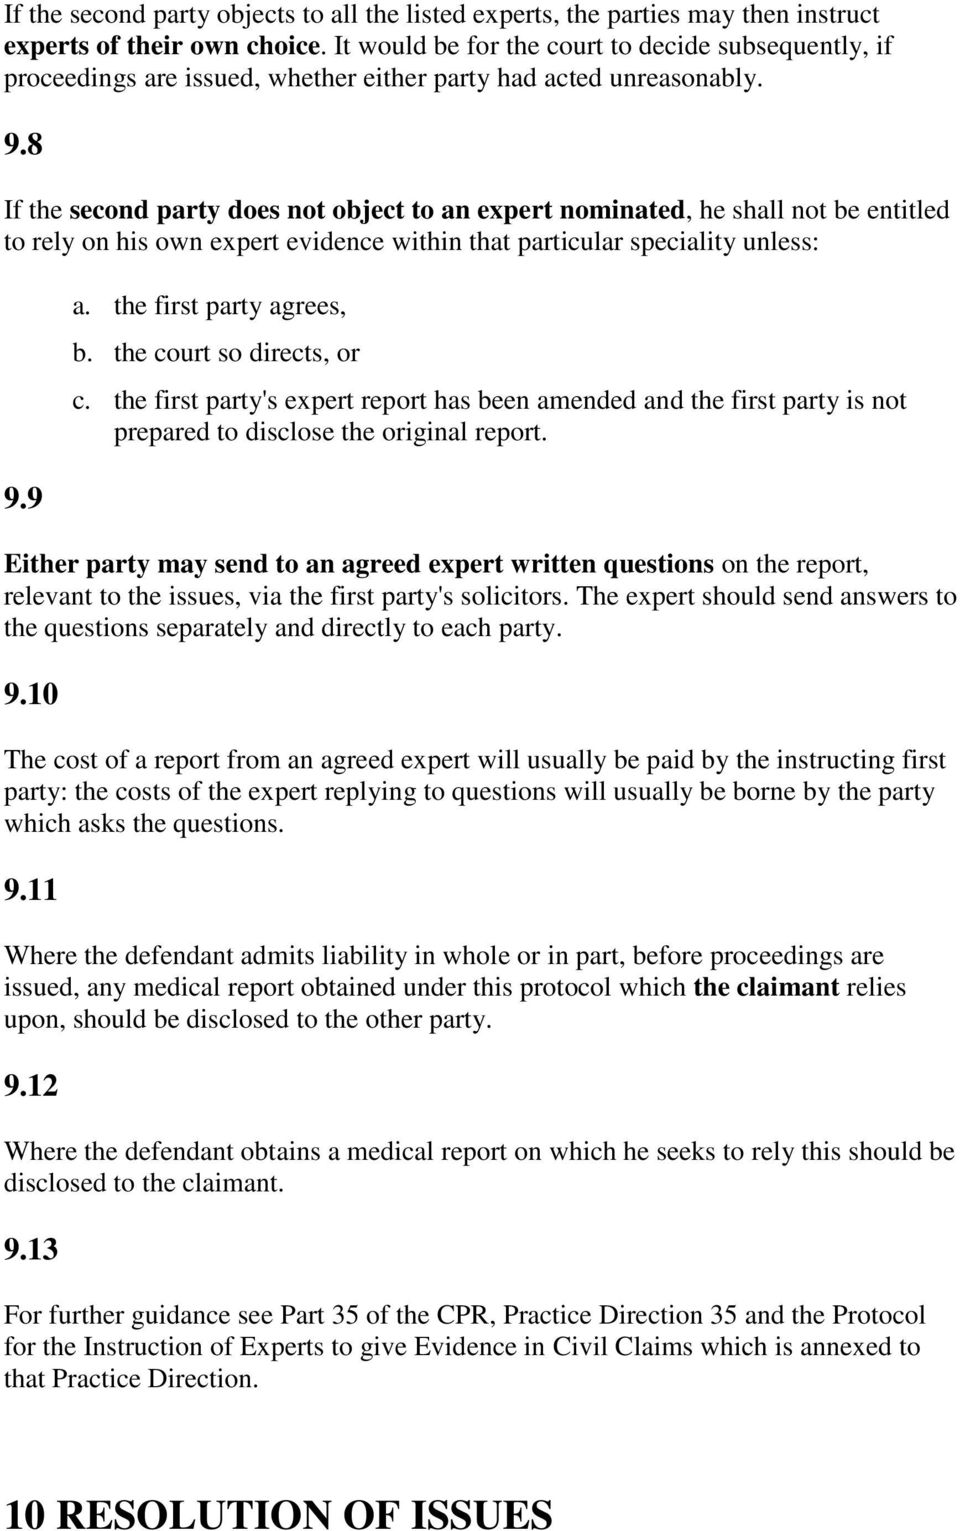 8 If the second party does not object to an expert nominated, he shall not be entitled to rely on his own expert evidence within that particular speciality unless: 9.9 a. the first party agrees, b.